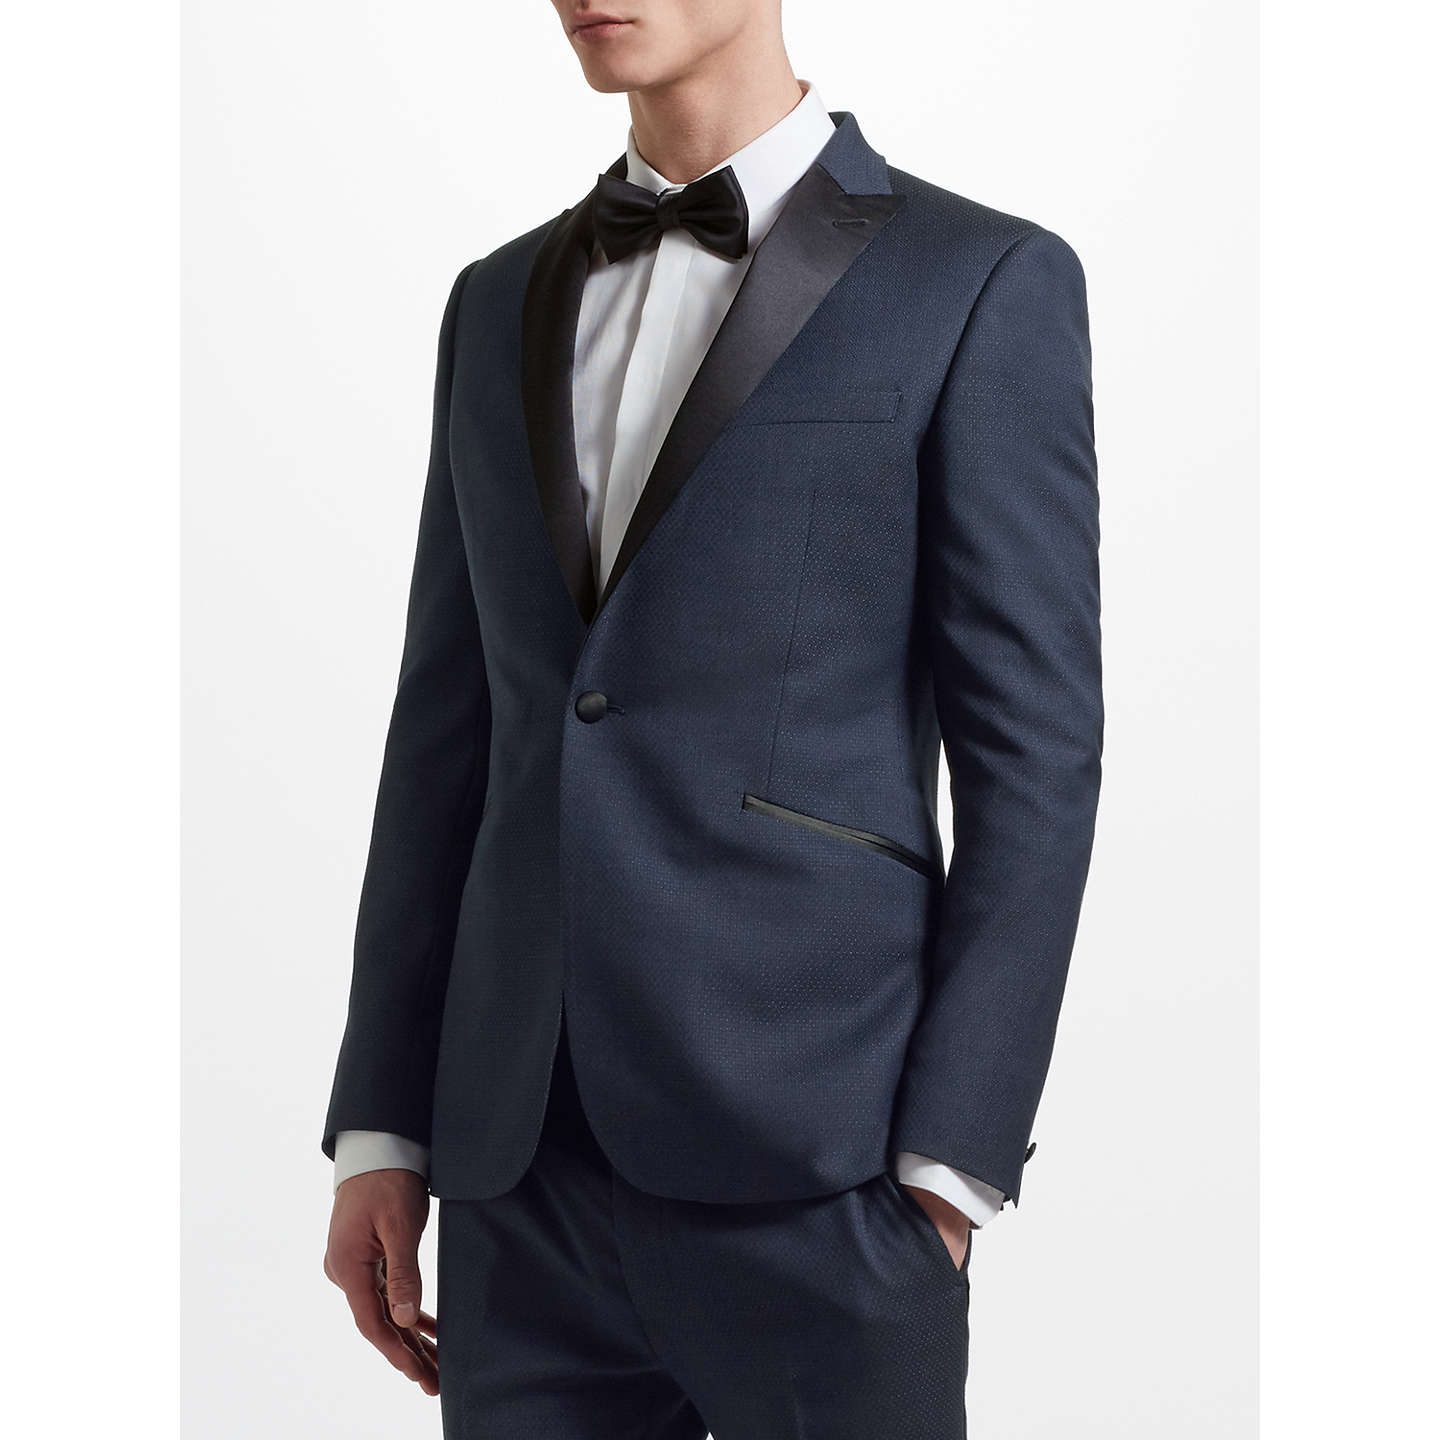 BuyKin by John Lewis Jacquard Pindot Slim Fit Dress Jacket, Navy, 36S Online at johnlewis.com